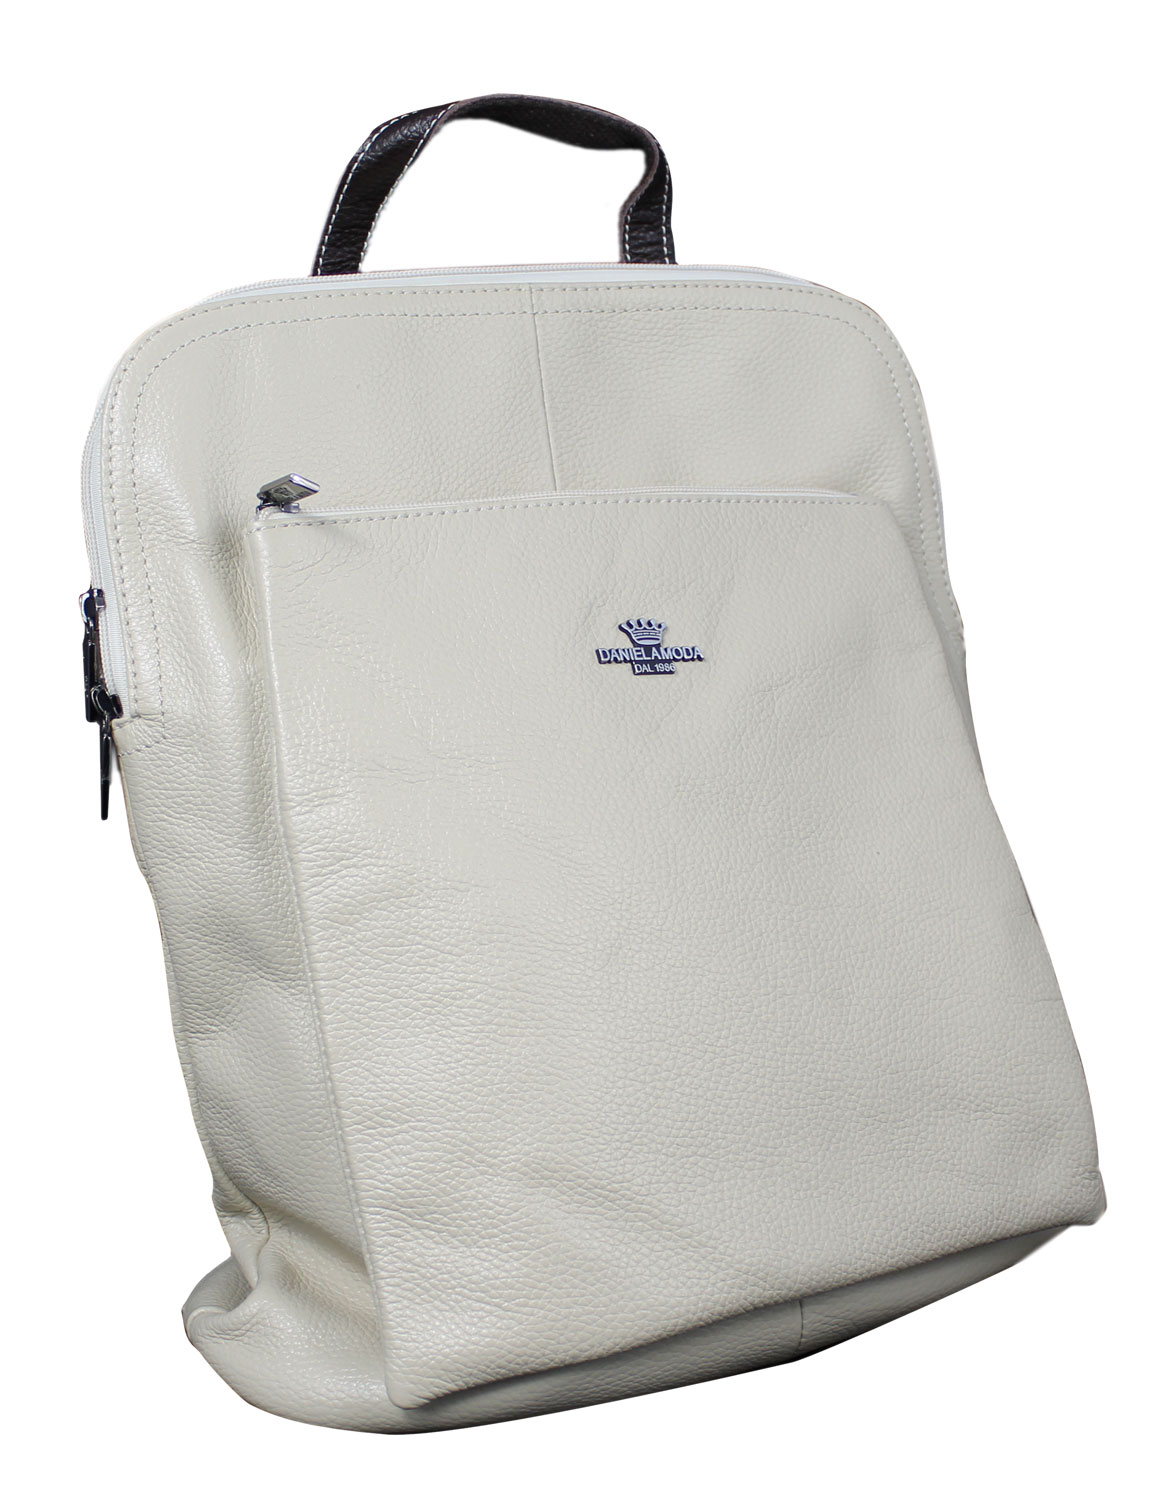 Florence Soft Leather Rucksack in Off White with Brown Trim